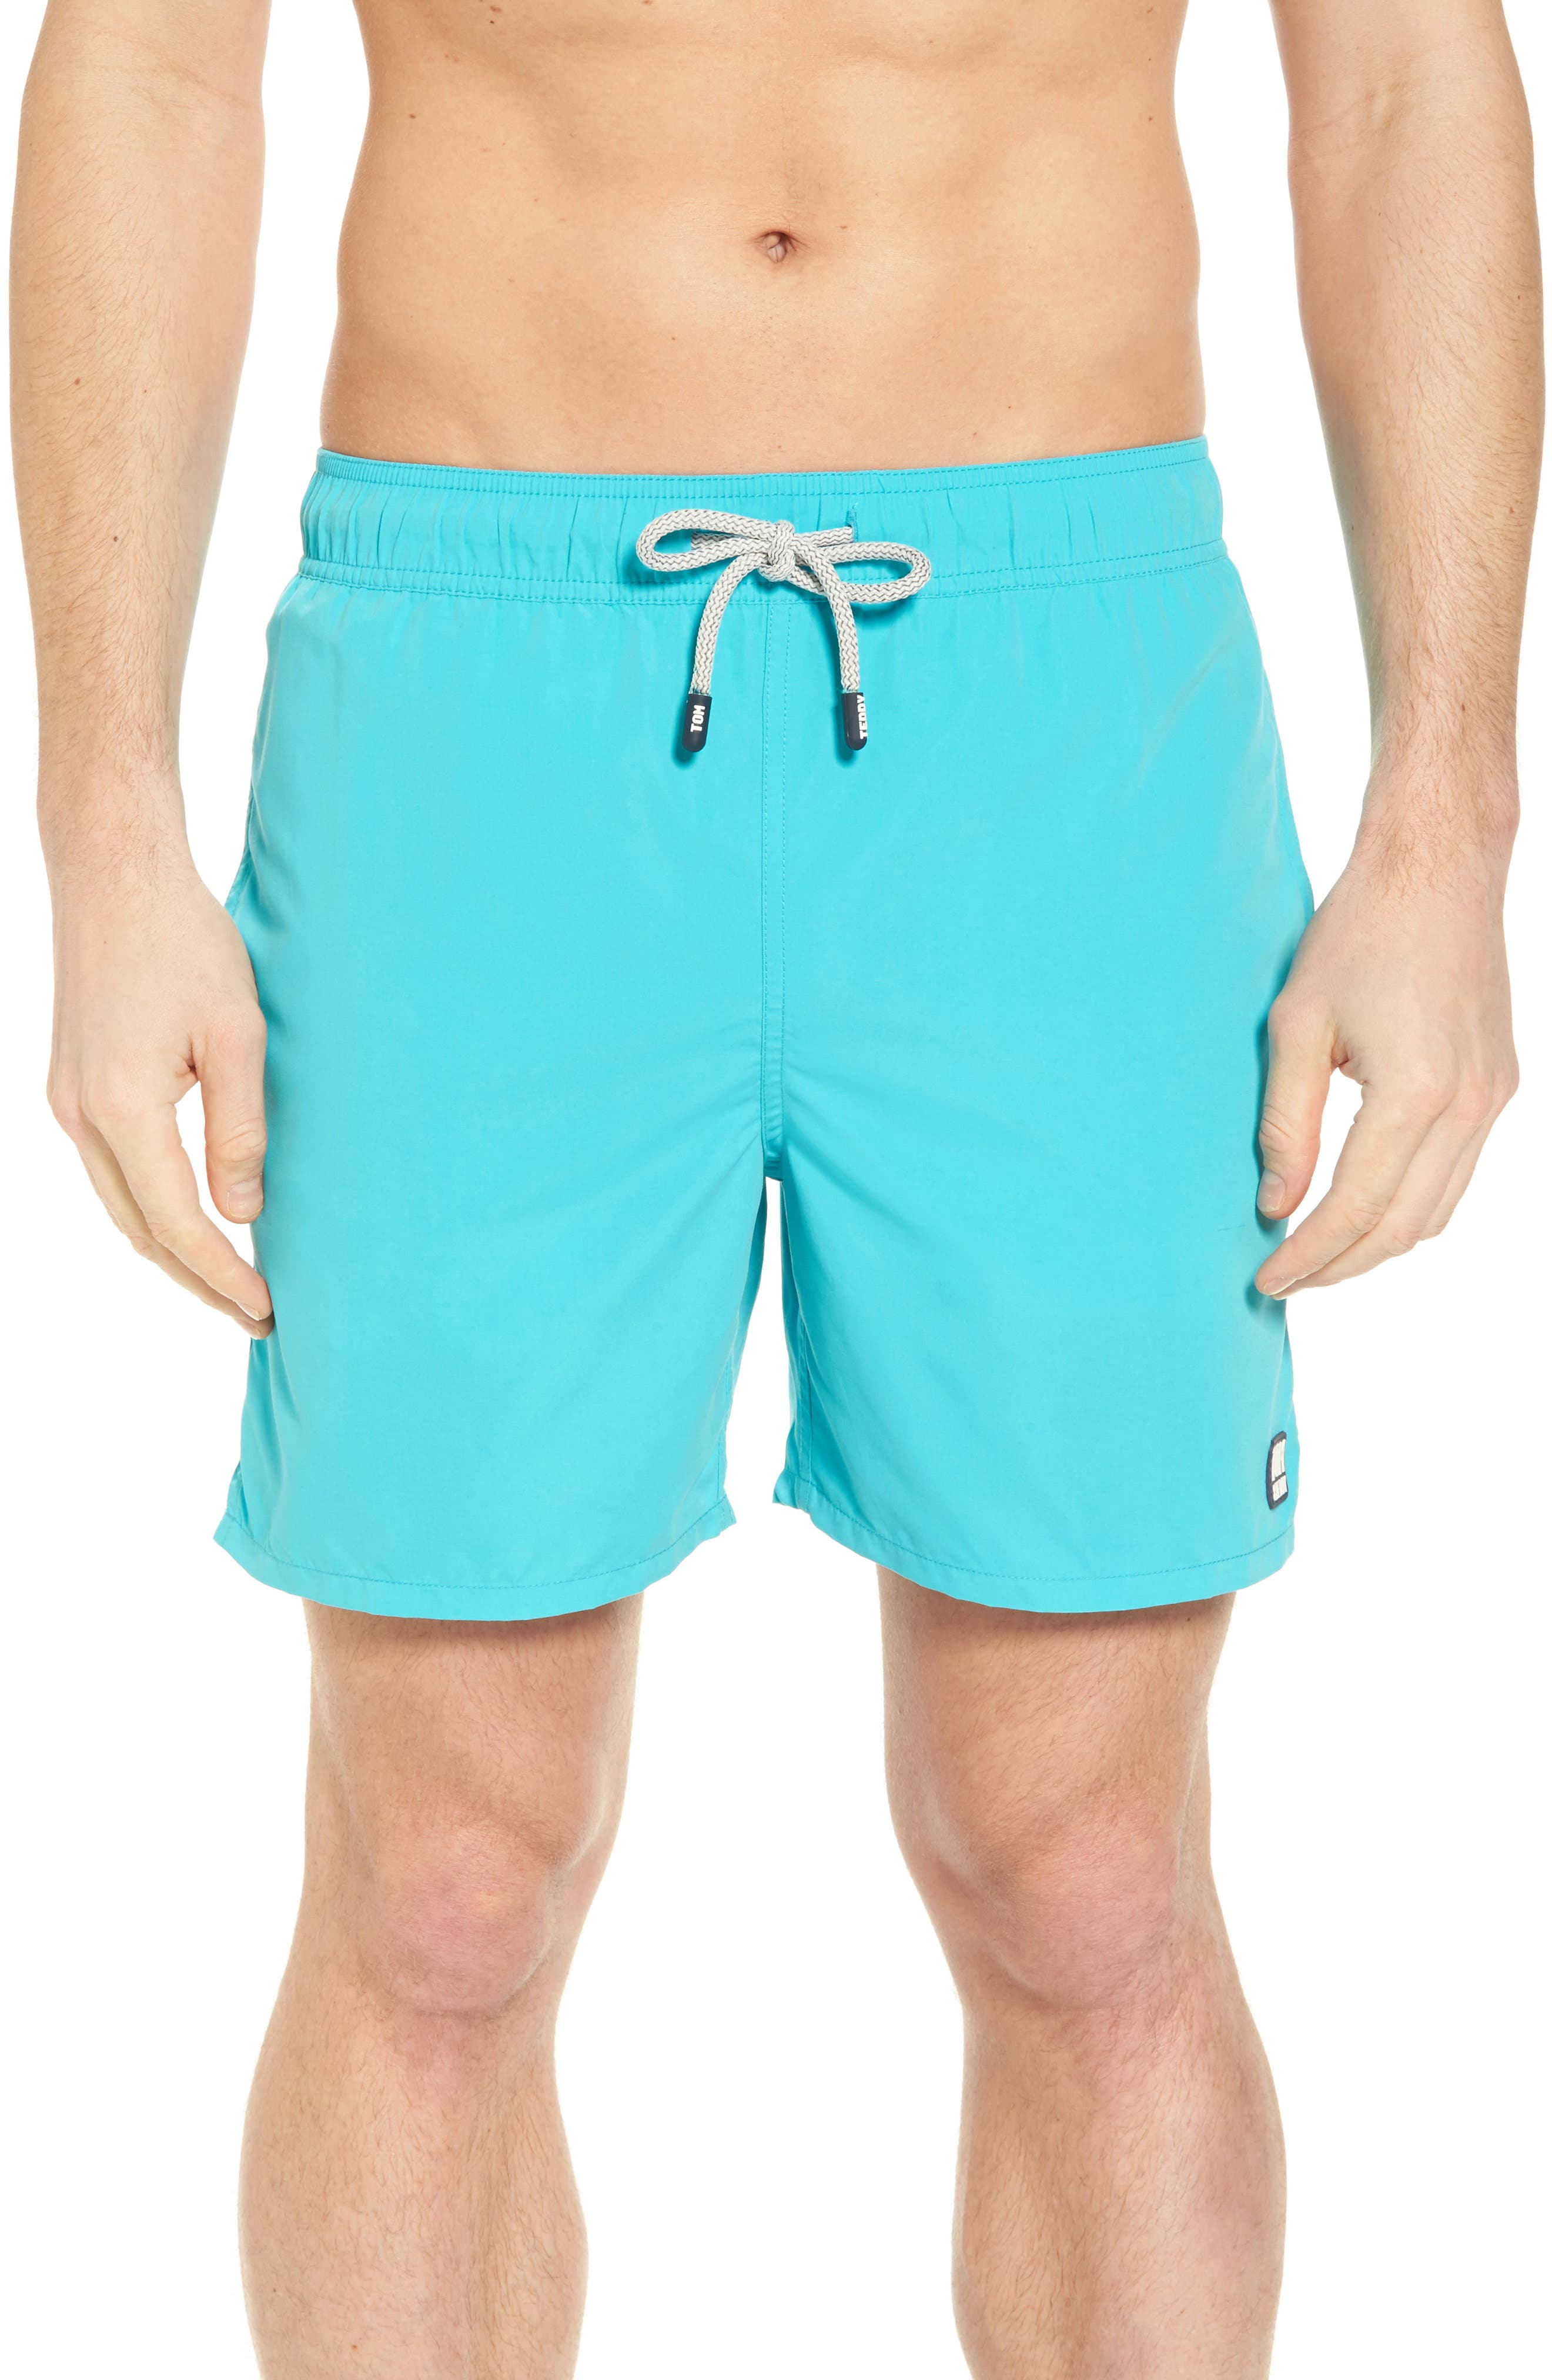 Solid Swim Trunks,                         Main,                         color, POOL BLUE